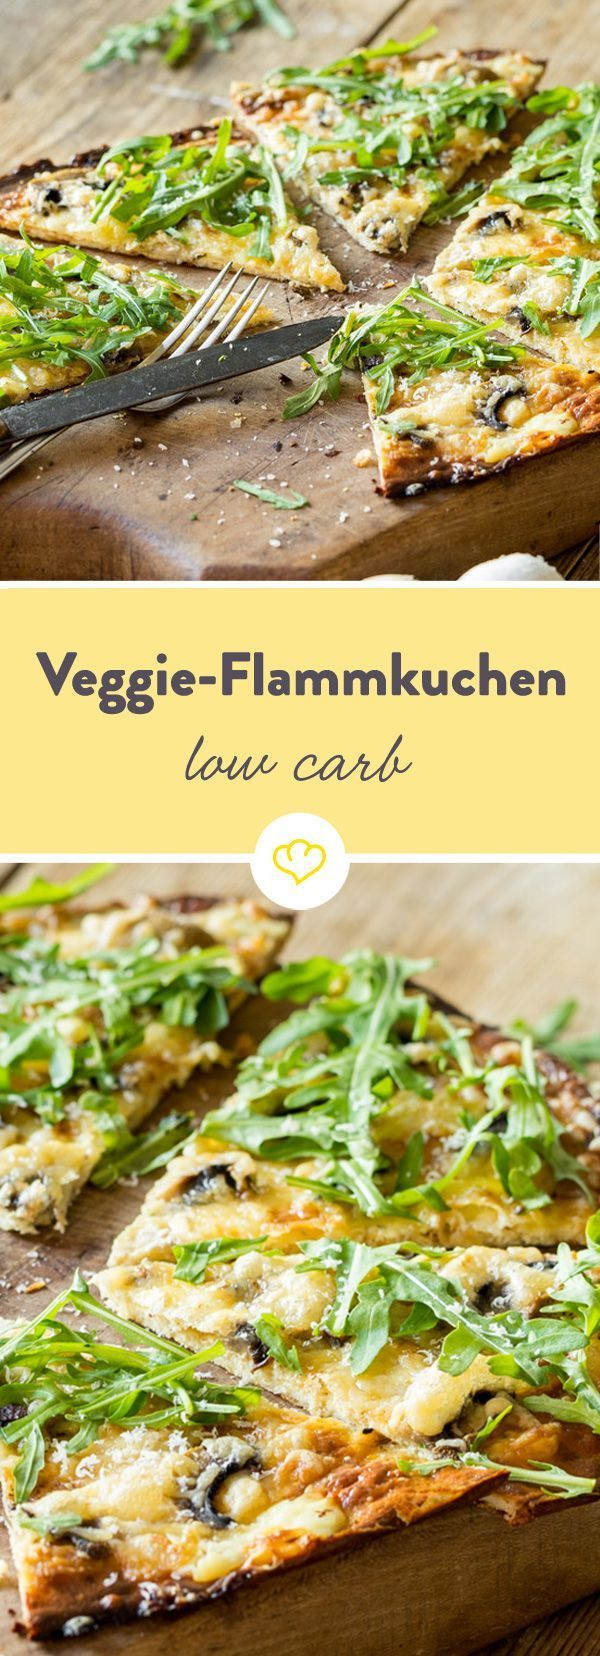 Photo of Low carb tarte flambee with arugula and mushrooms